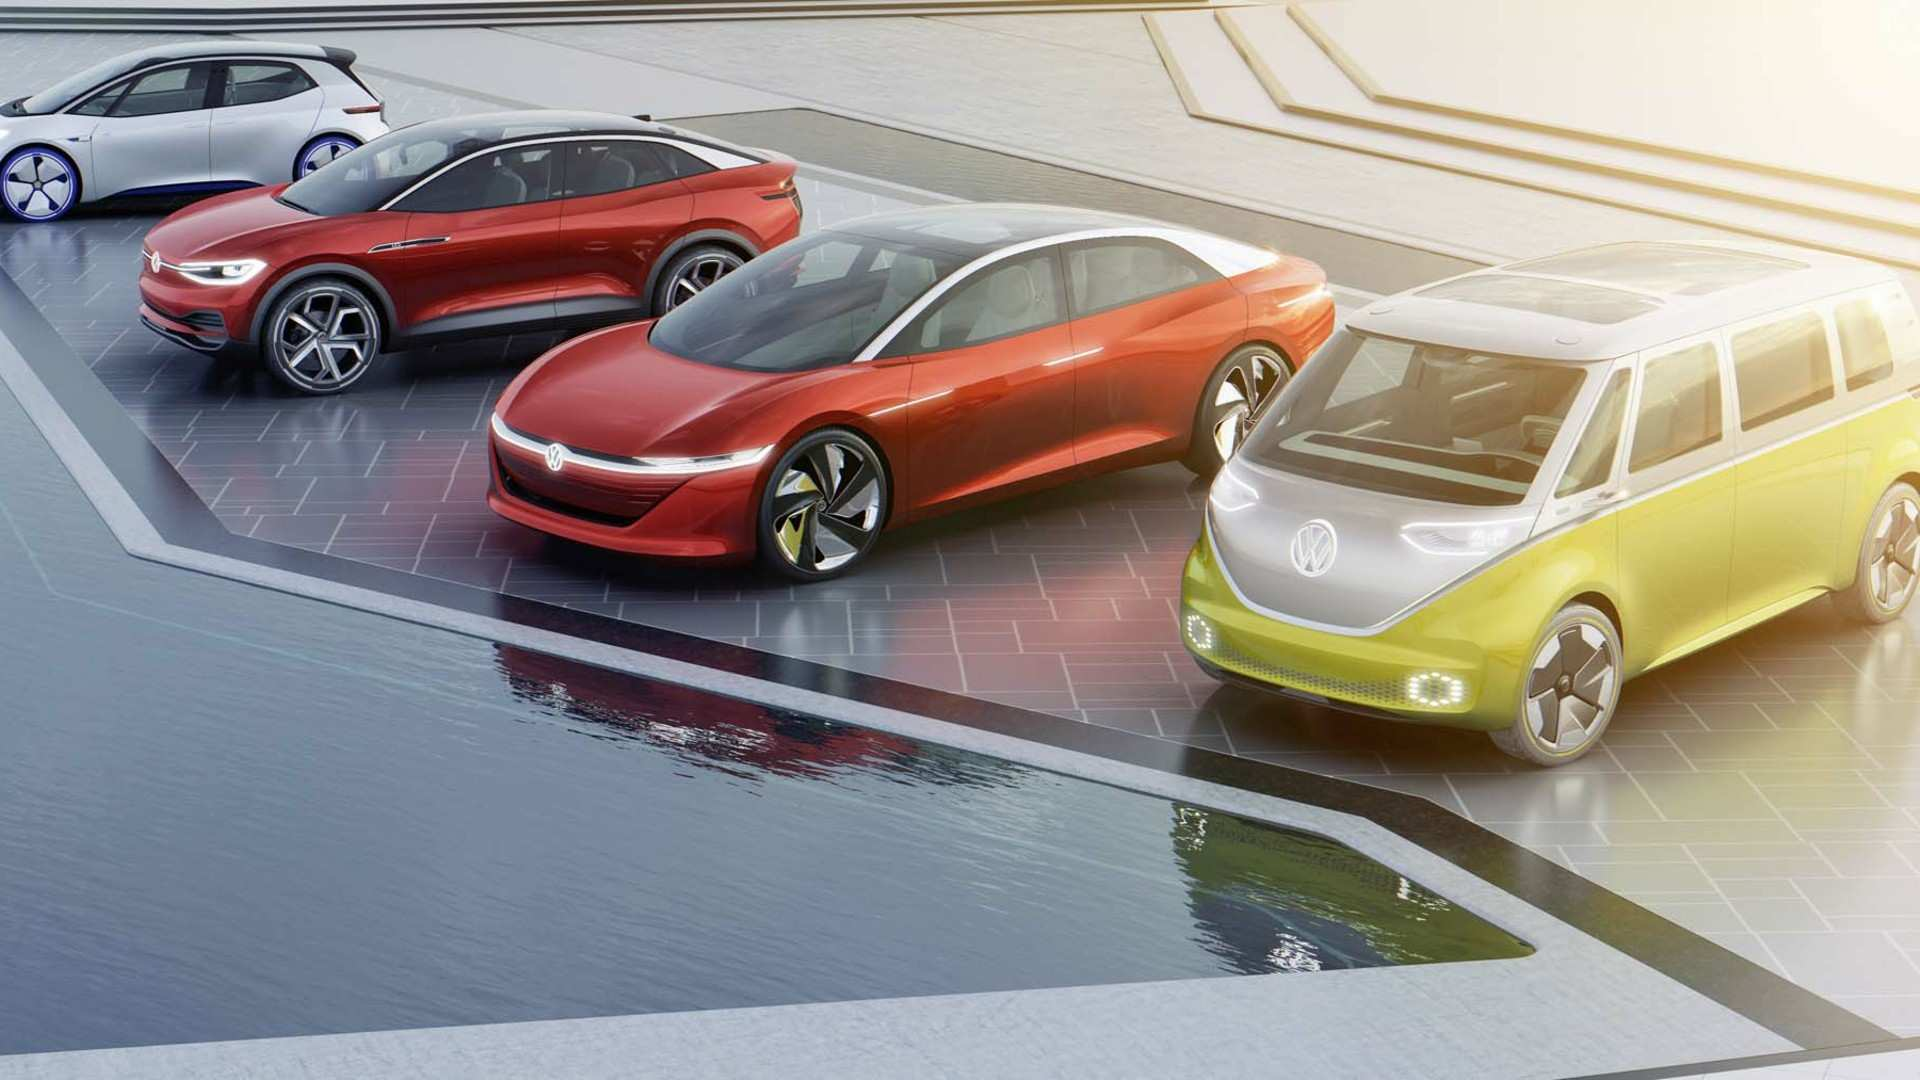 11 All New Volkswagen Upcoming Cars 2020 Interior with Volkswagen Upcoming Cars 2020